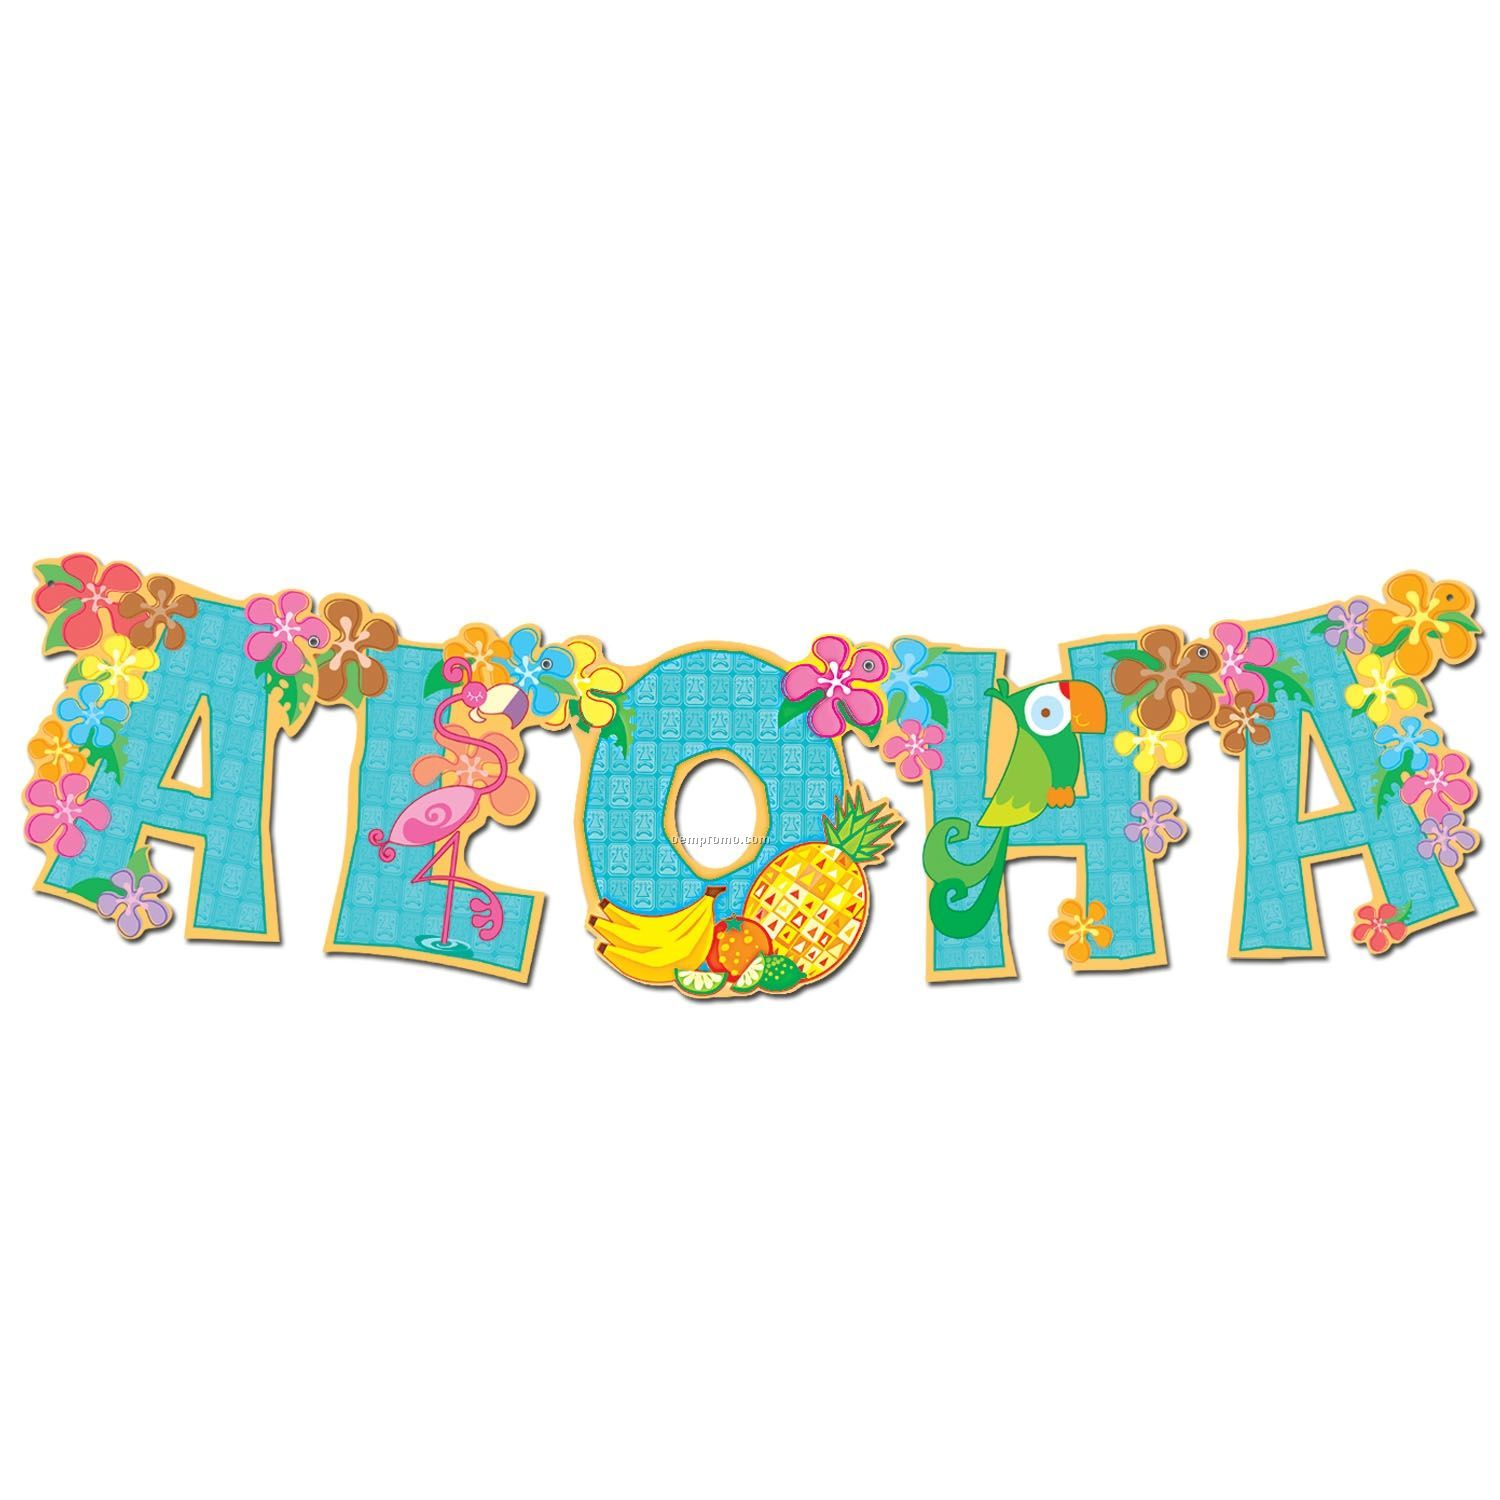 Hawaiian party decorations abc party ideas for girls for Decoration clips